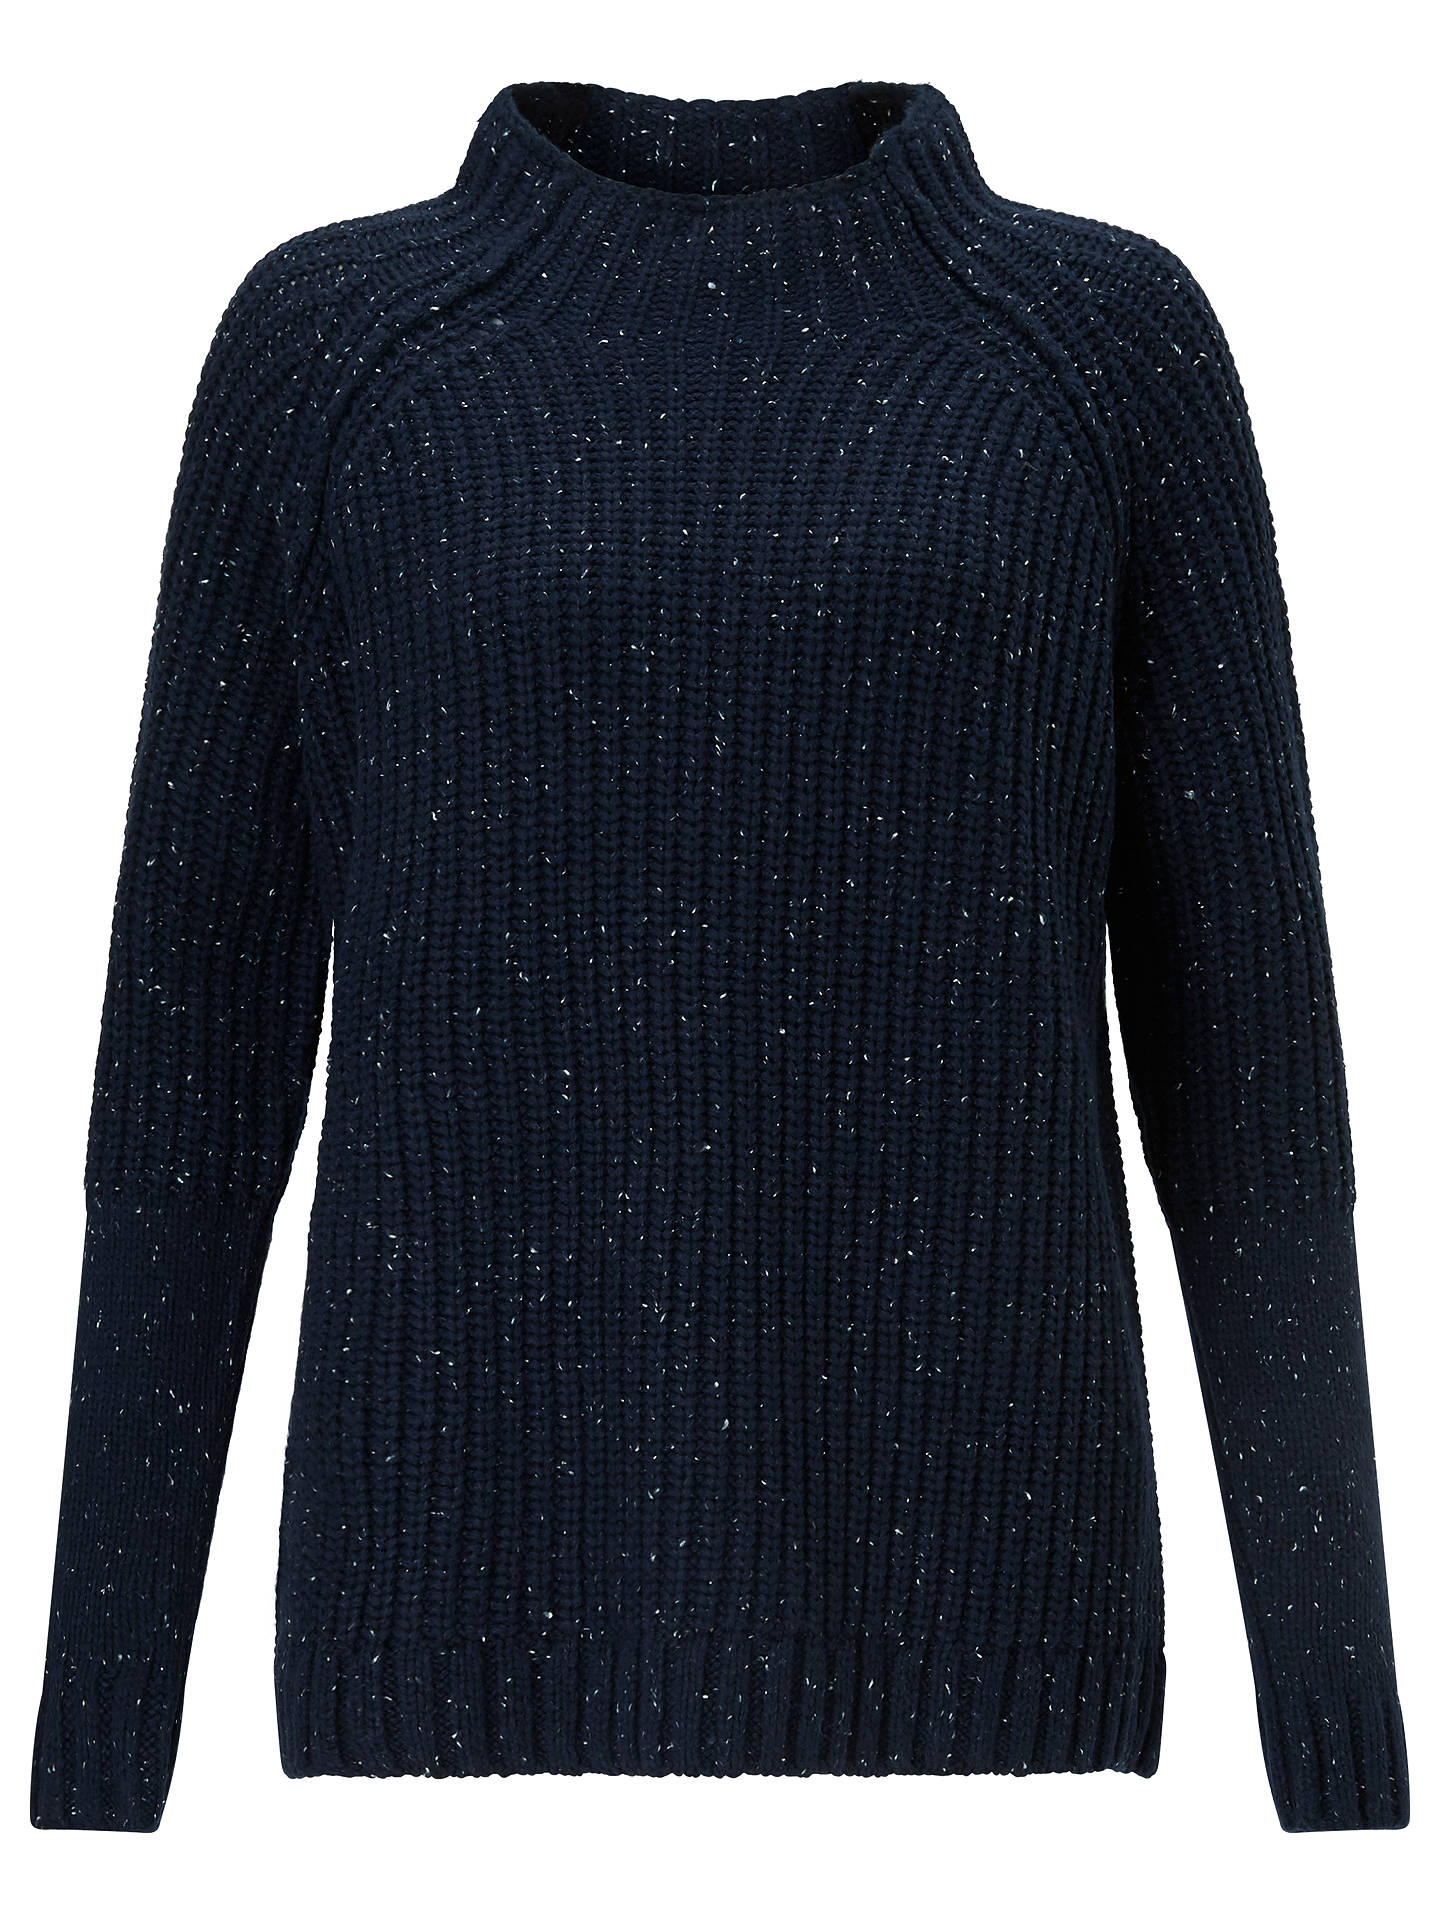 ea8094df5 Great Plains Speckle Knit Polo Neck Jumper